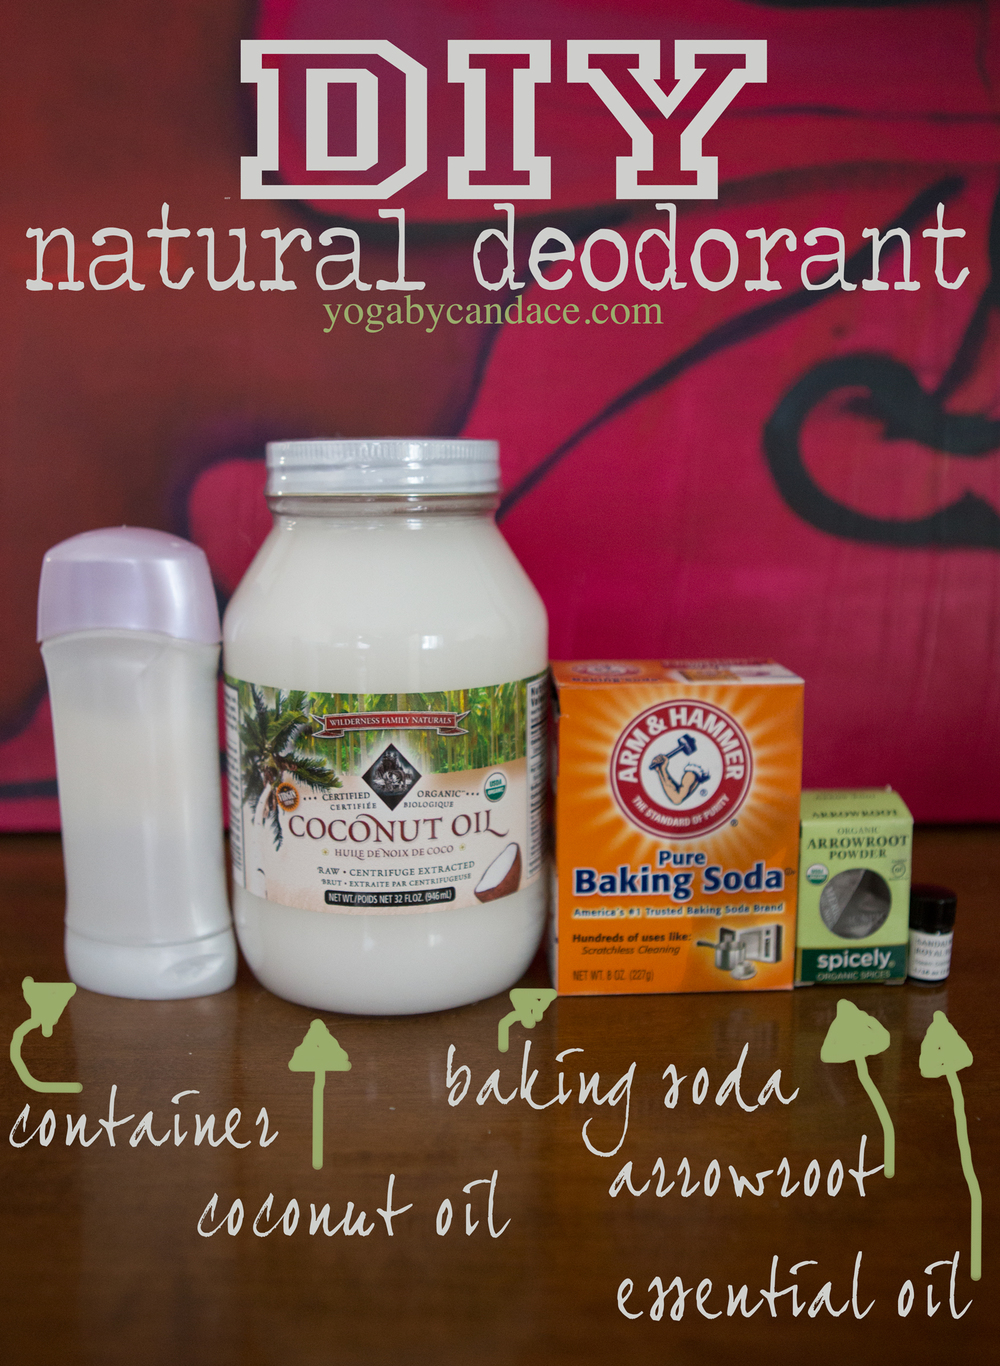 Pin it! DIY all natural deodorant Using: deodorant container, coconut oil, baking soda, arrowroot powder, essential oil